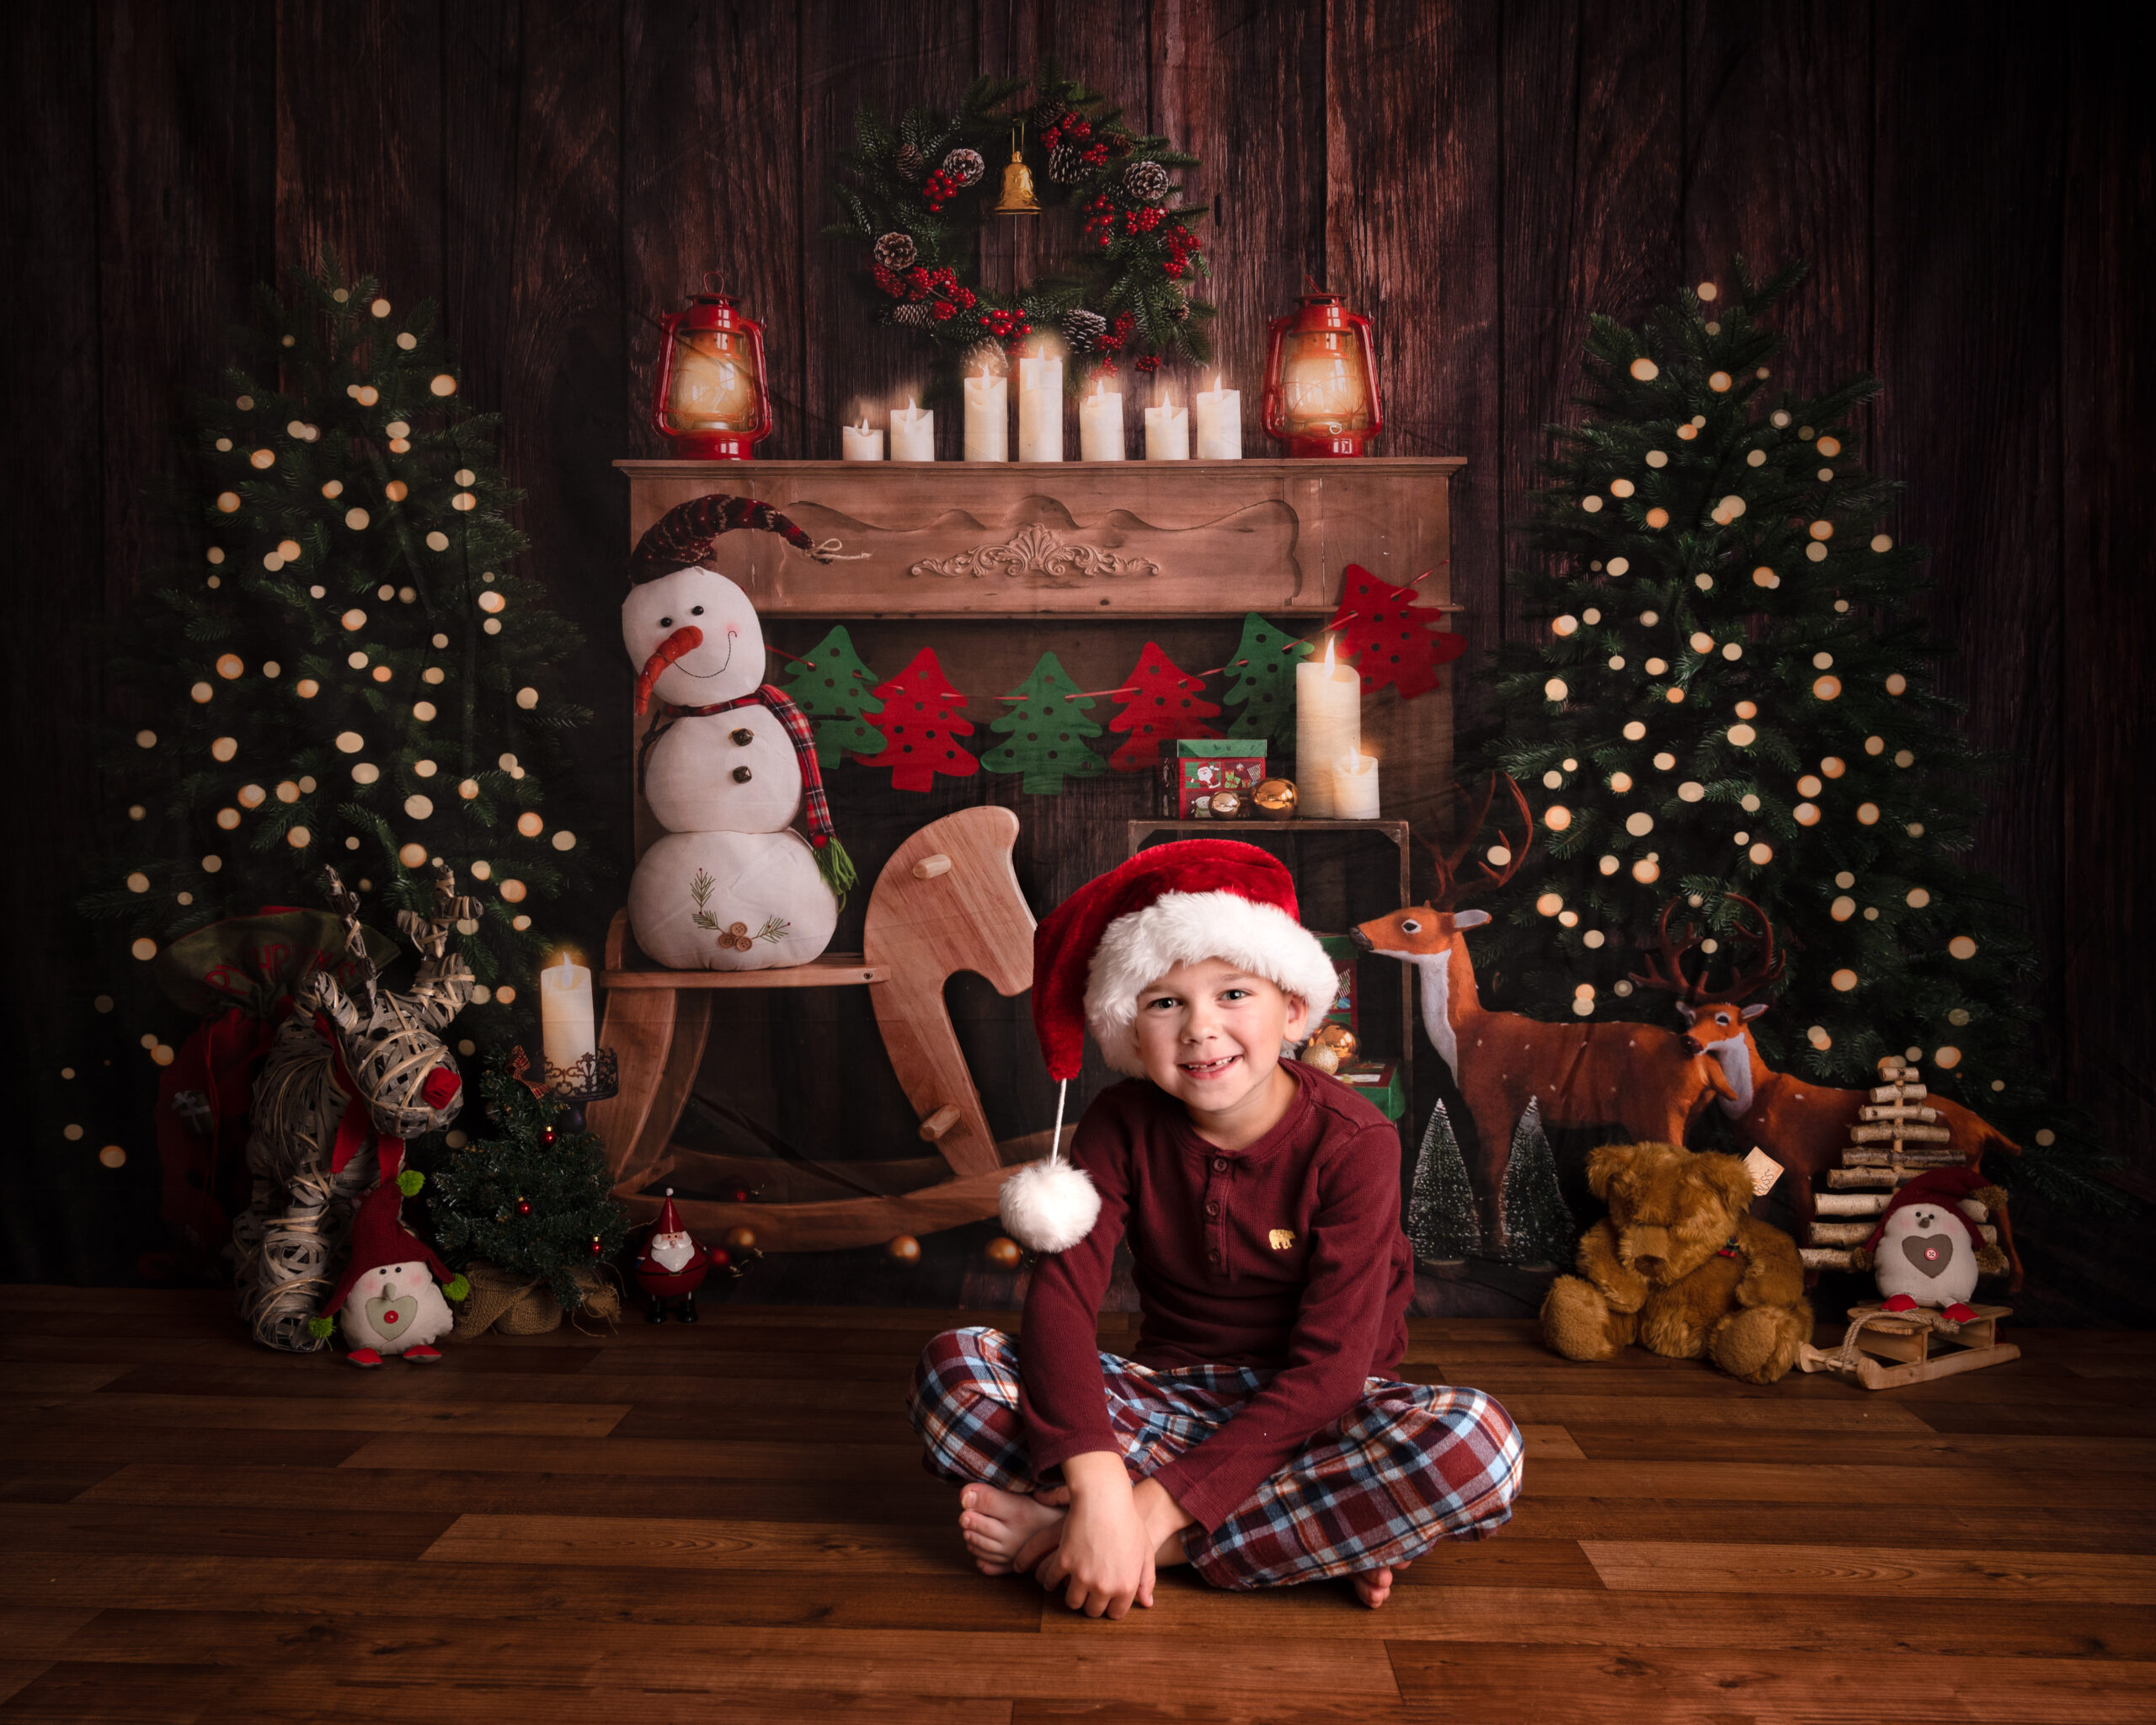 Christmas Mini Sessions are here!